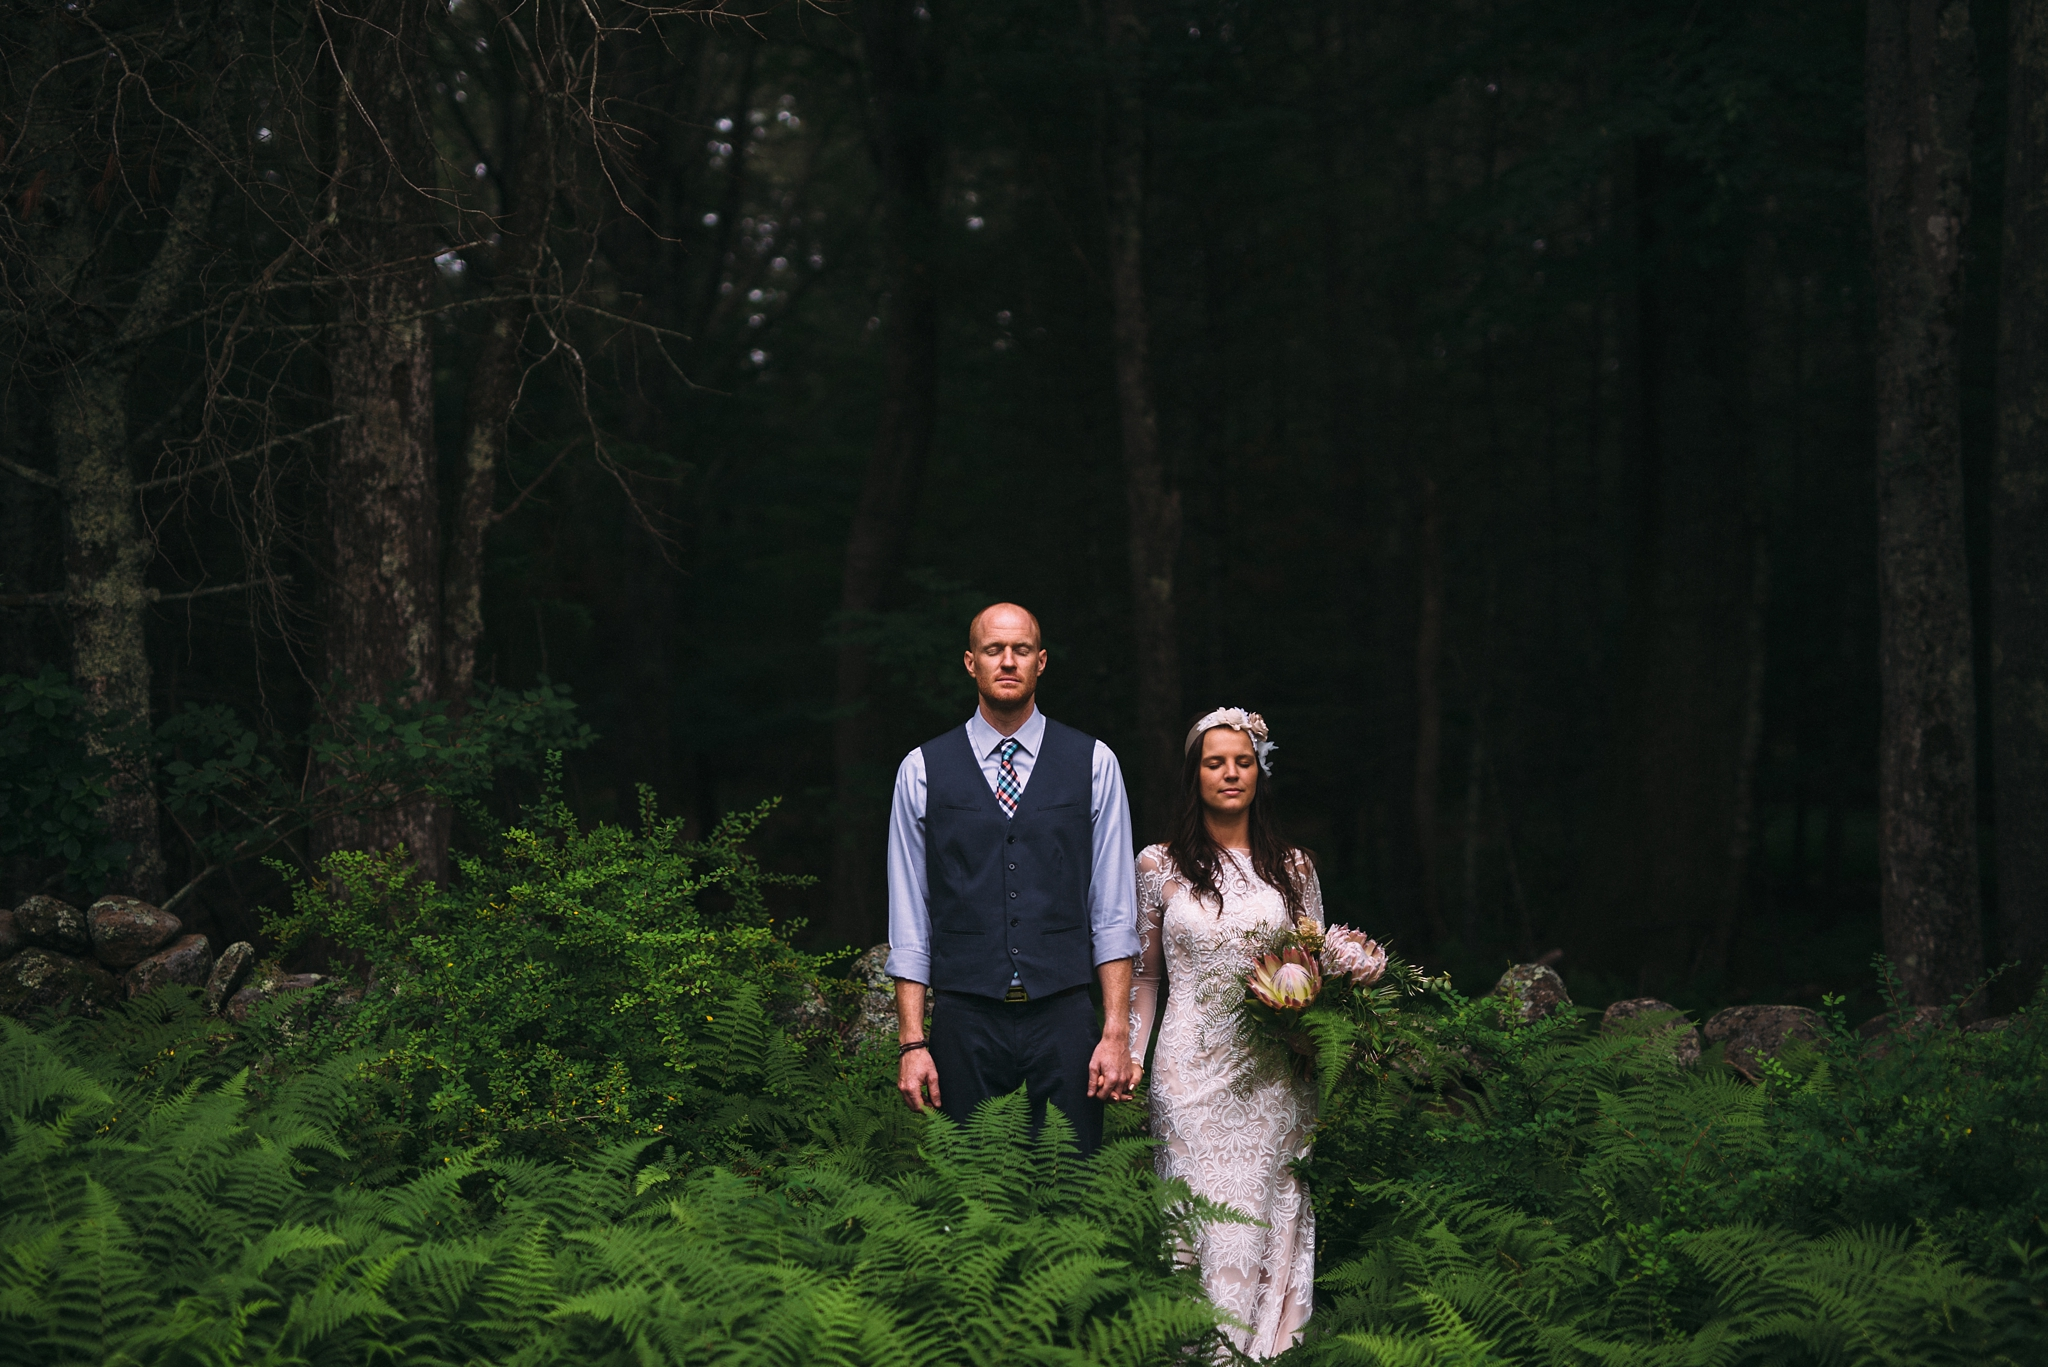 kaihla_tonai_intimate_wedding_elopement_photographer_2116